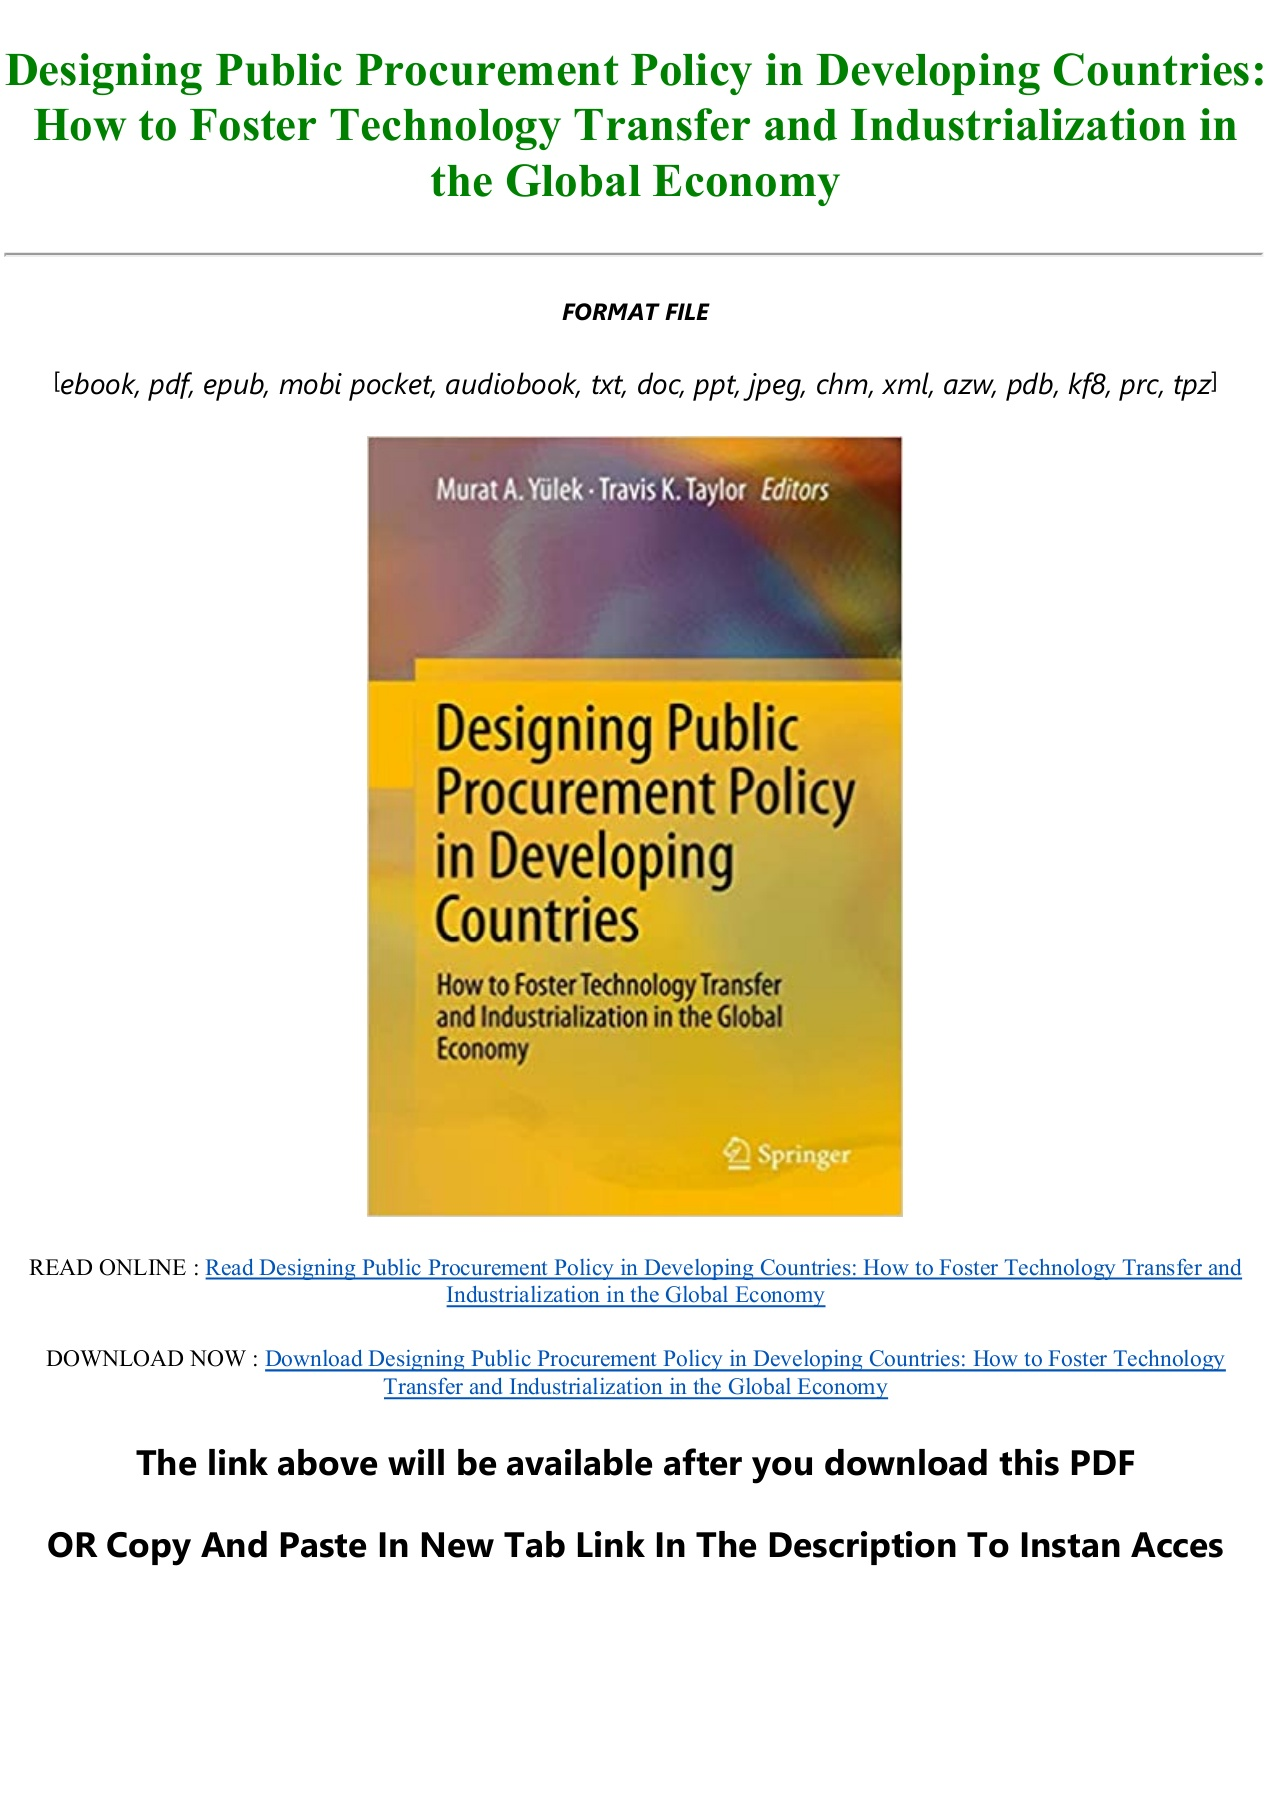 Download eBook Designing Public Procurement Policy in Developing ...